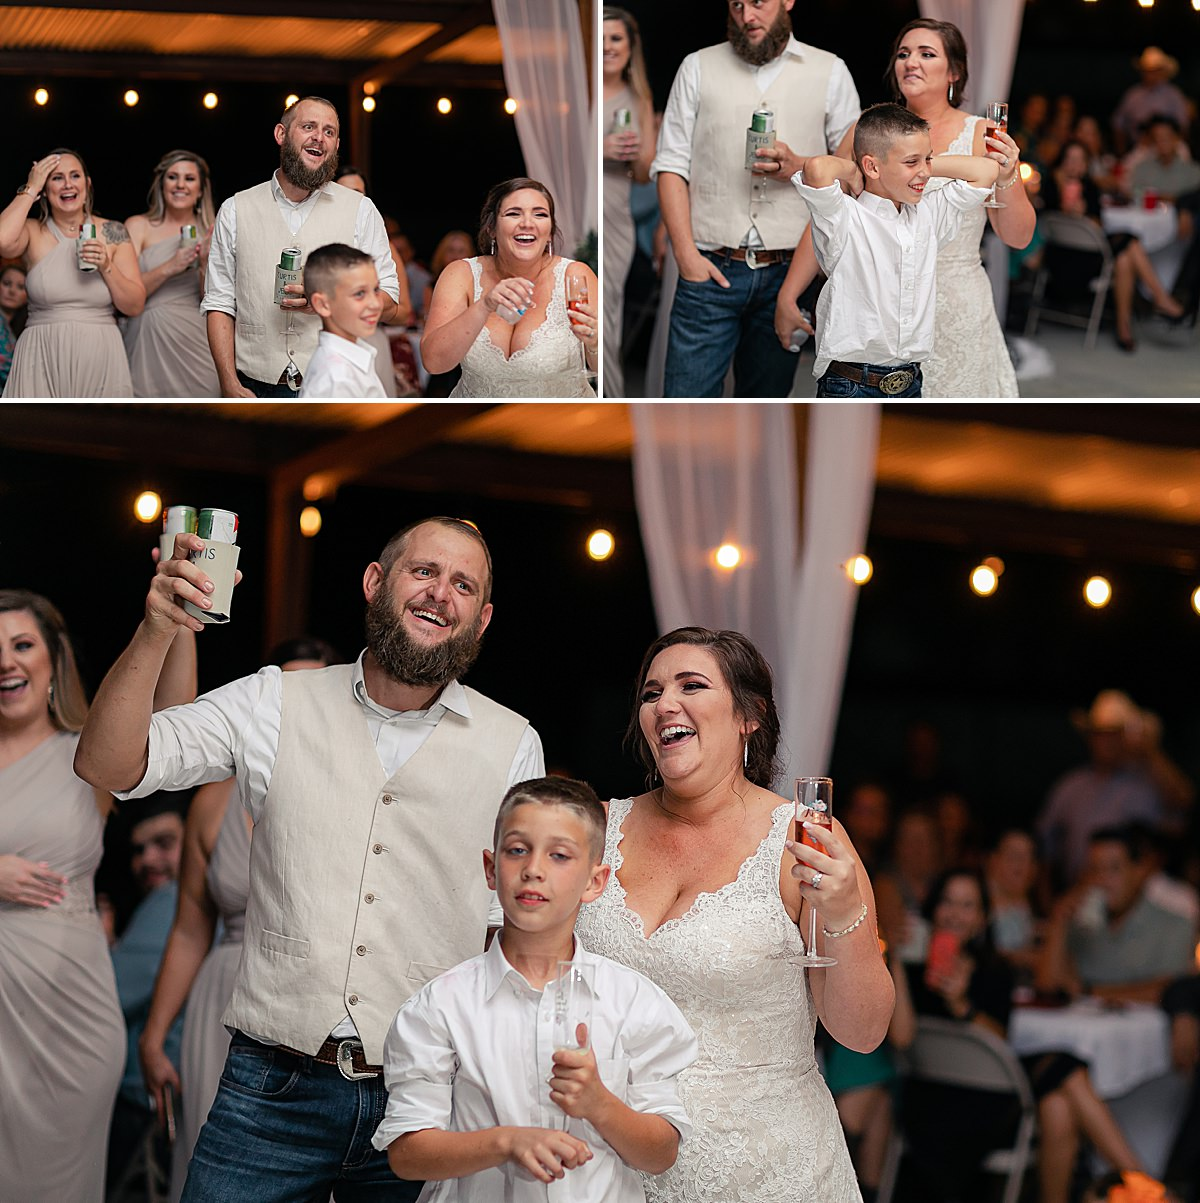 Rustic-Texas-Wedding-Hollow-Creek-Ranch-Carly-Barton-Photography_0047.jpg